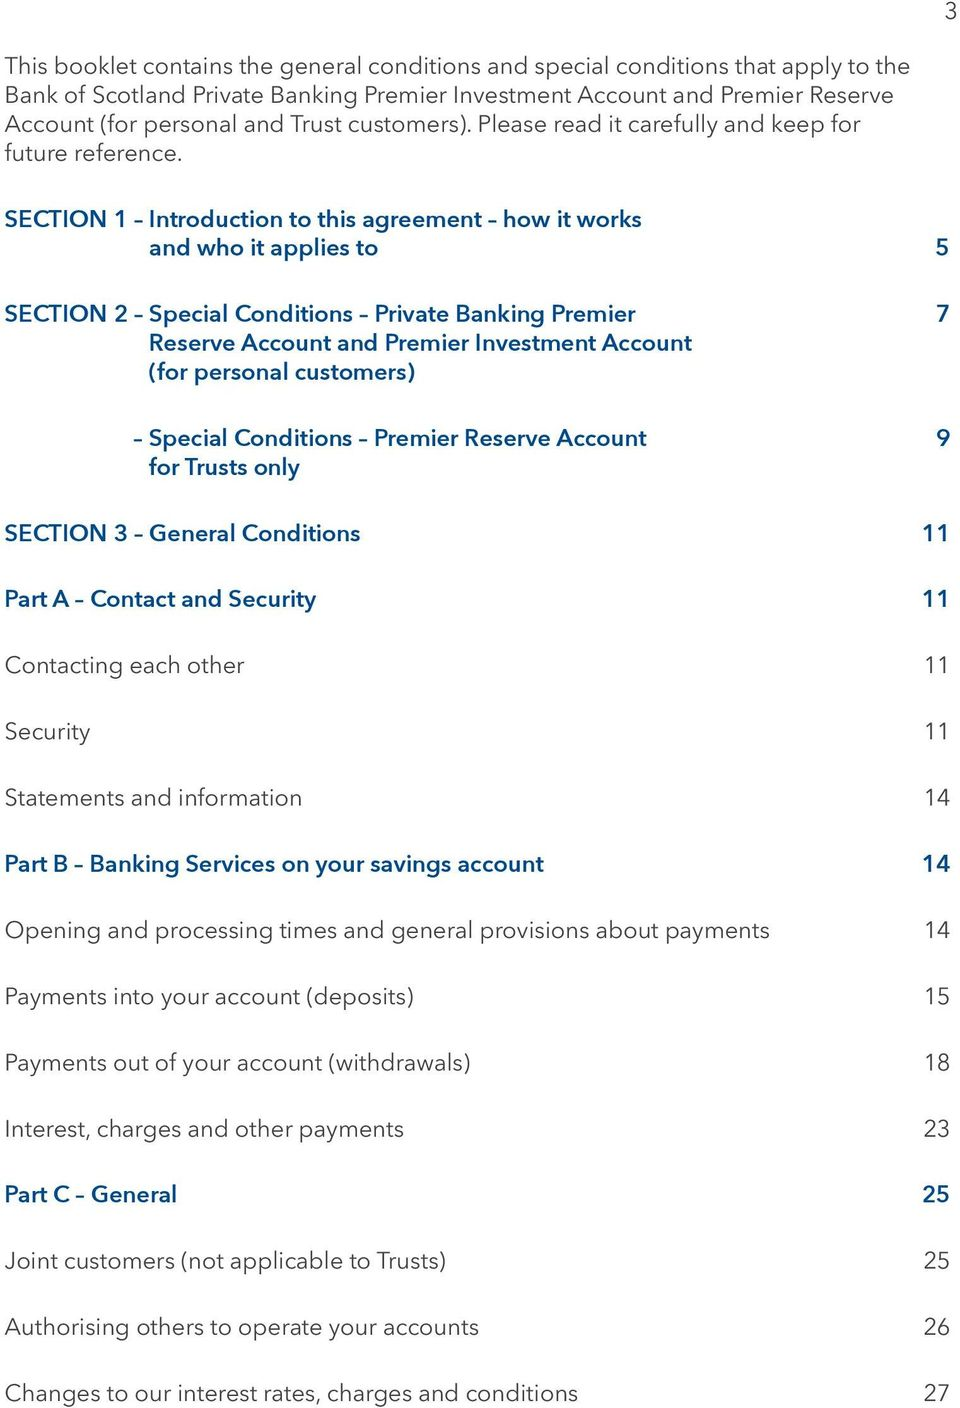 SECTION 1 Introduction to this agreement how it works and who it applies to 5 SECTION 2 Special Conditions Private Banking Premier 7 Reserve Account and Premier Investment Account (for personal